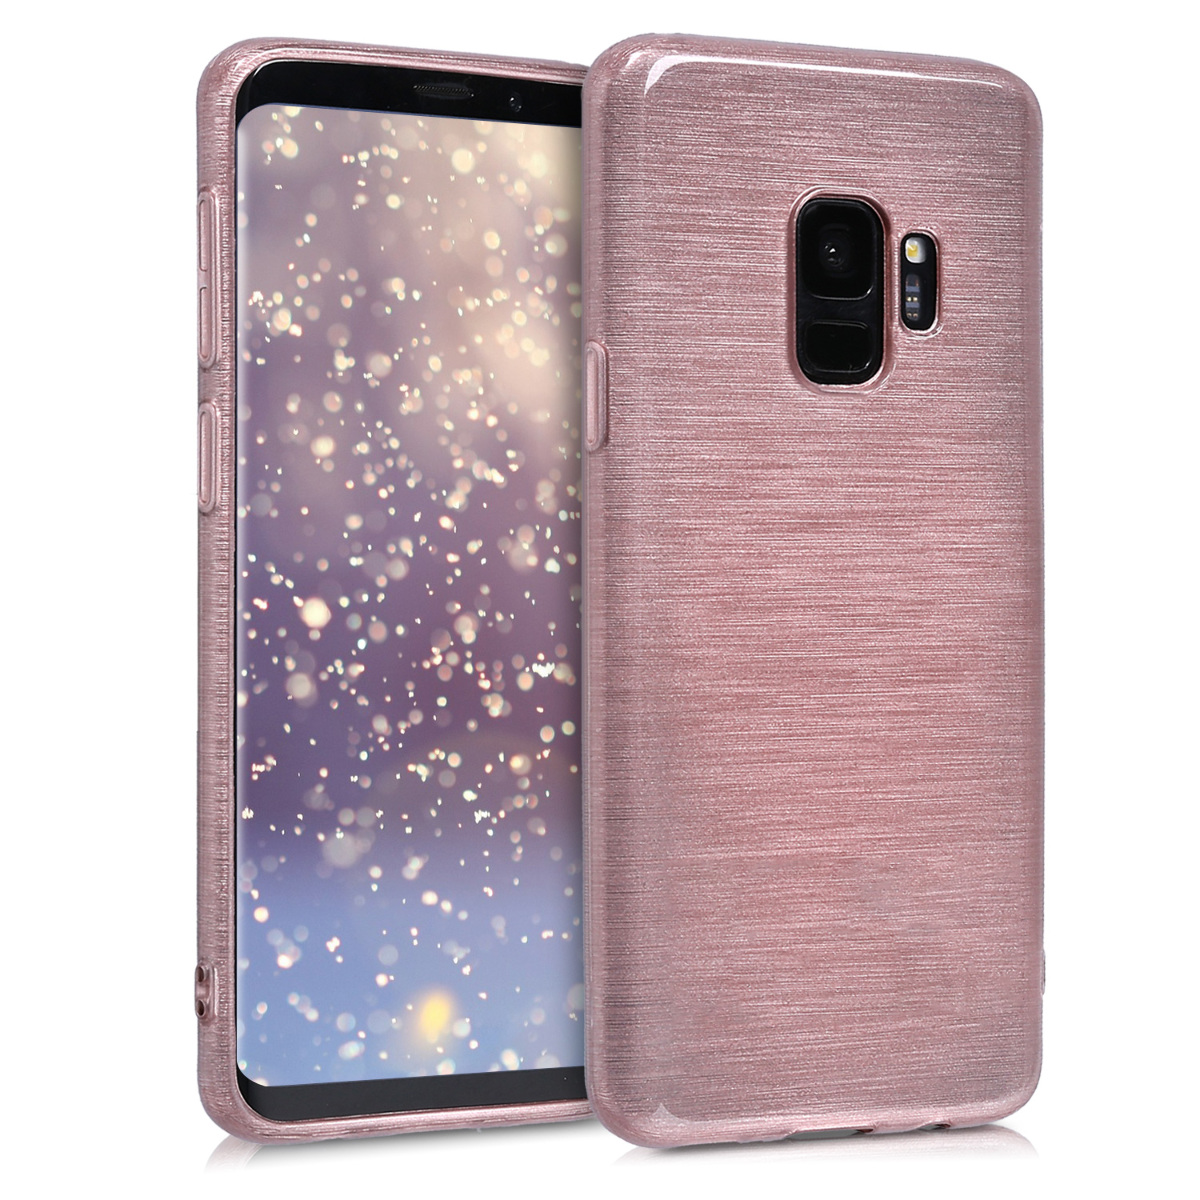 TPU Silikonové pouzdro pro Samsung Galaxy S9 - Soft Flexible Shock Absorbent Protective Phone Cover - Brushed Aluminum Rose Gold / Transparent